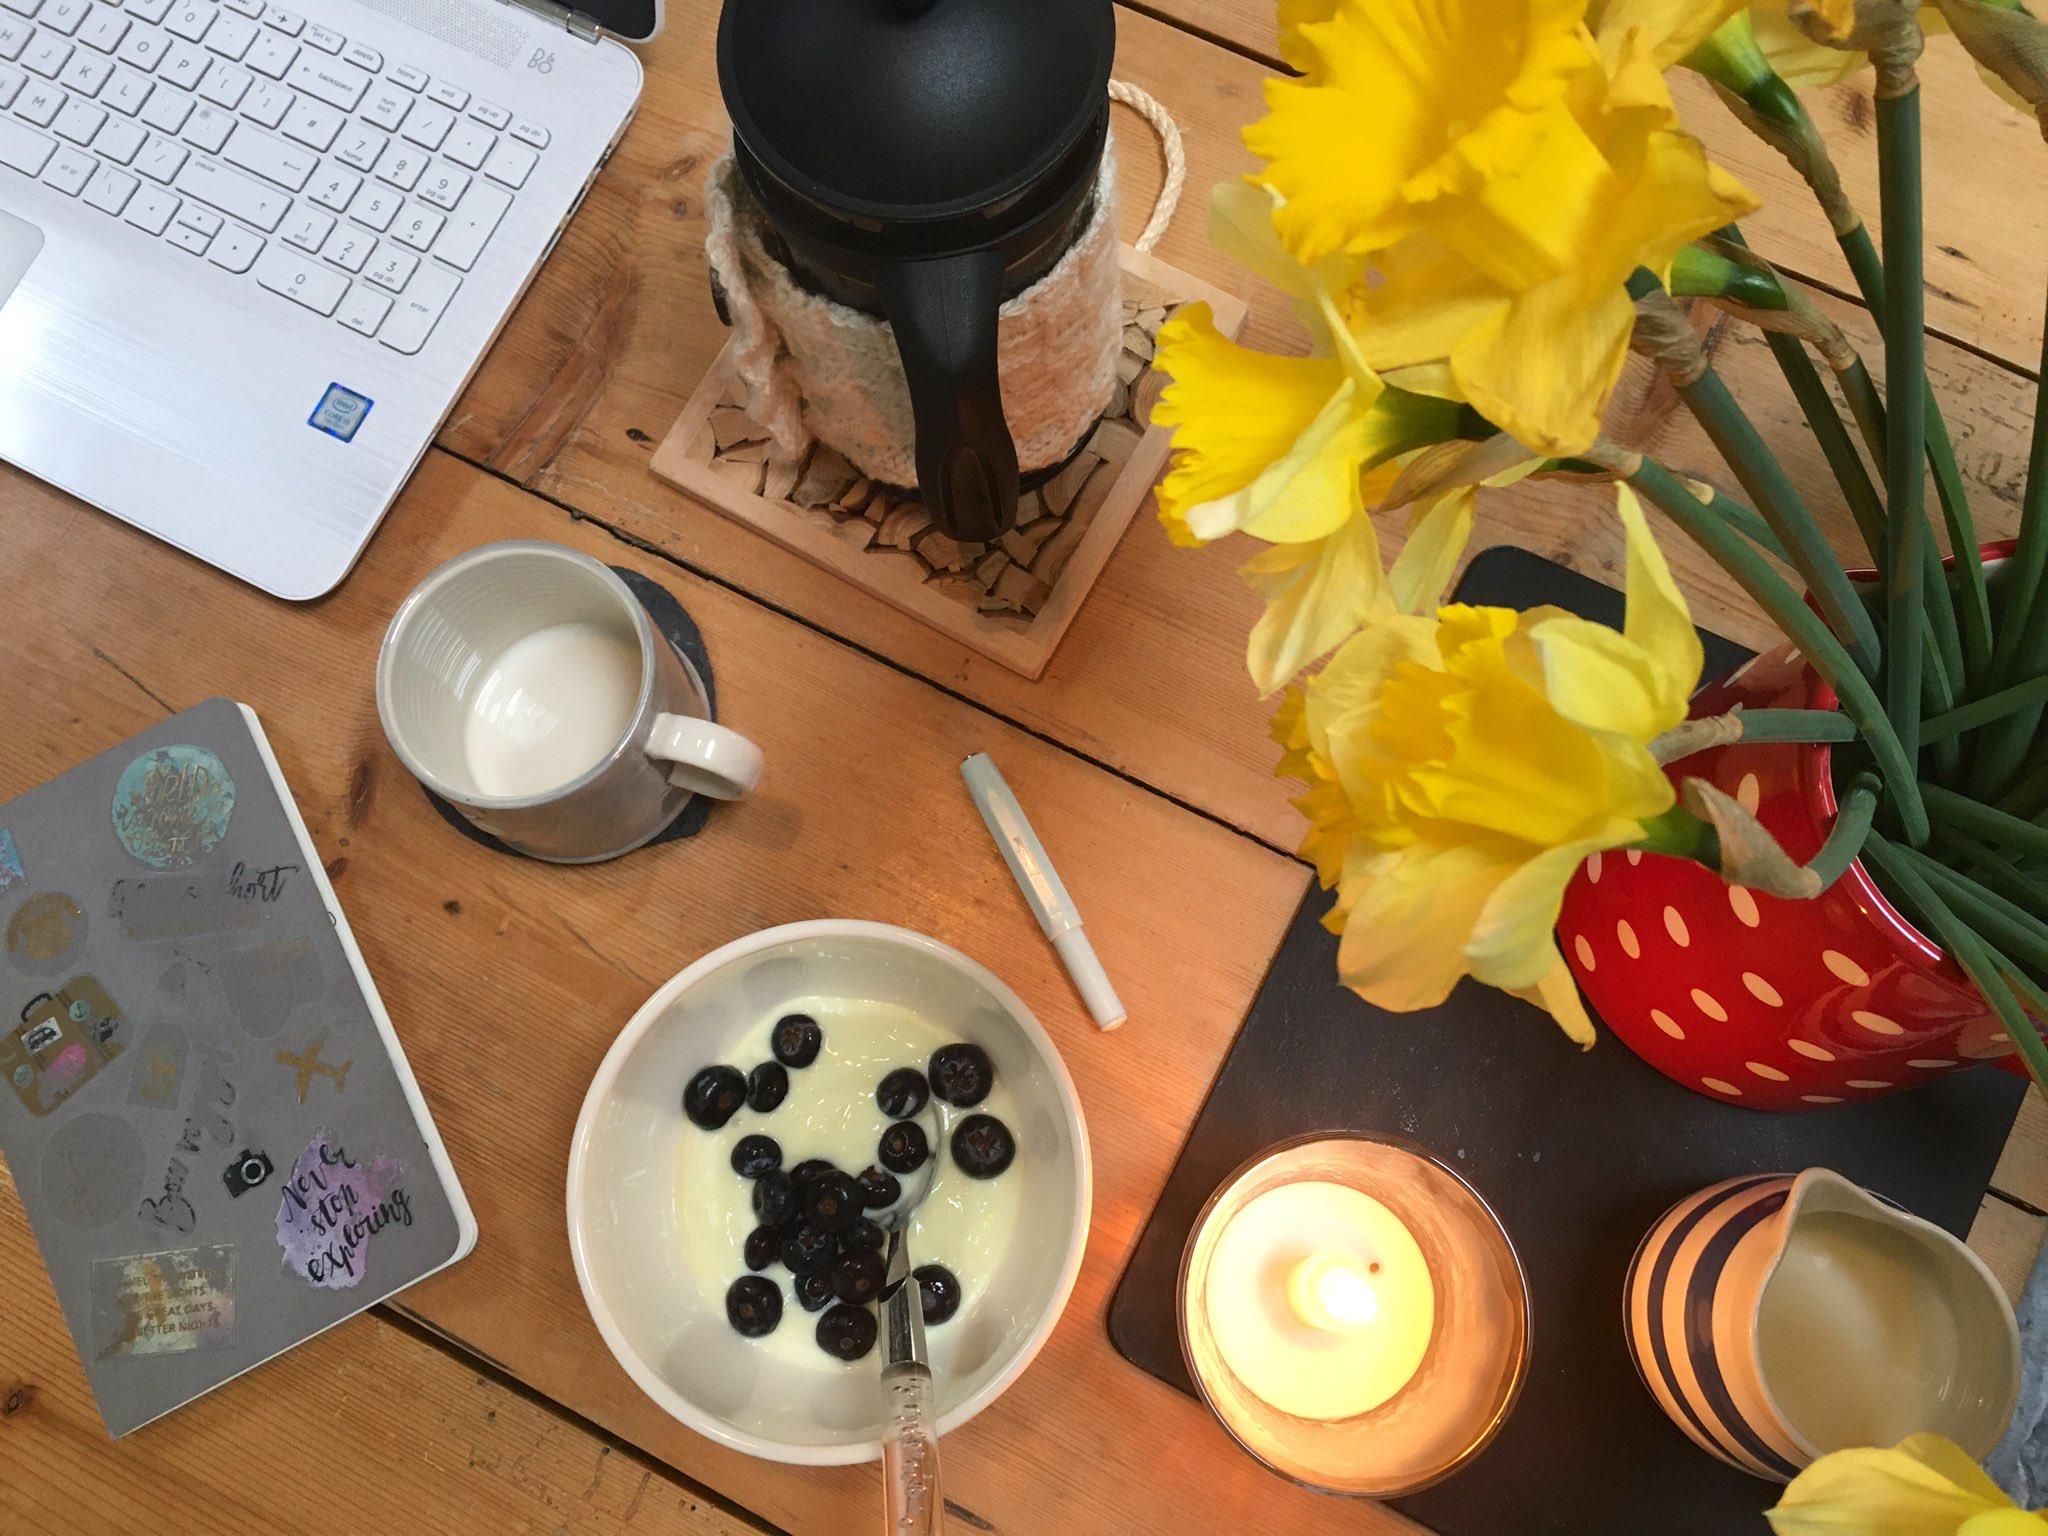 Notebook and laptop on a kitchen table from above, with coffee, breakfast and a candle